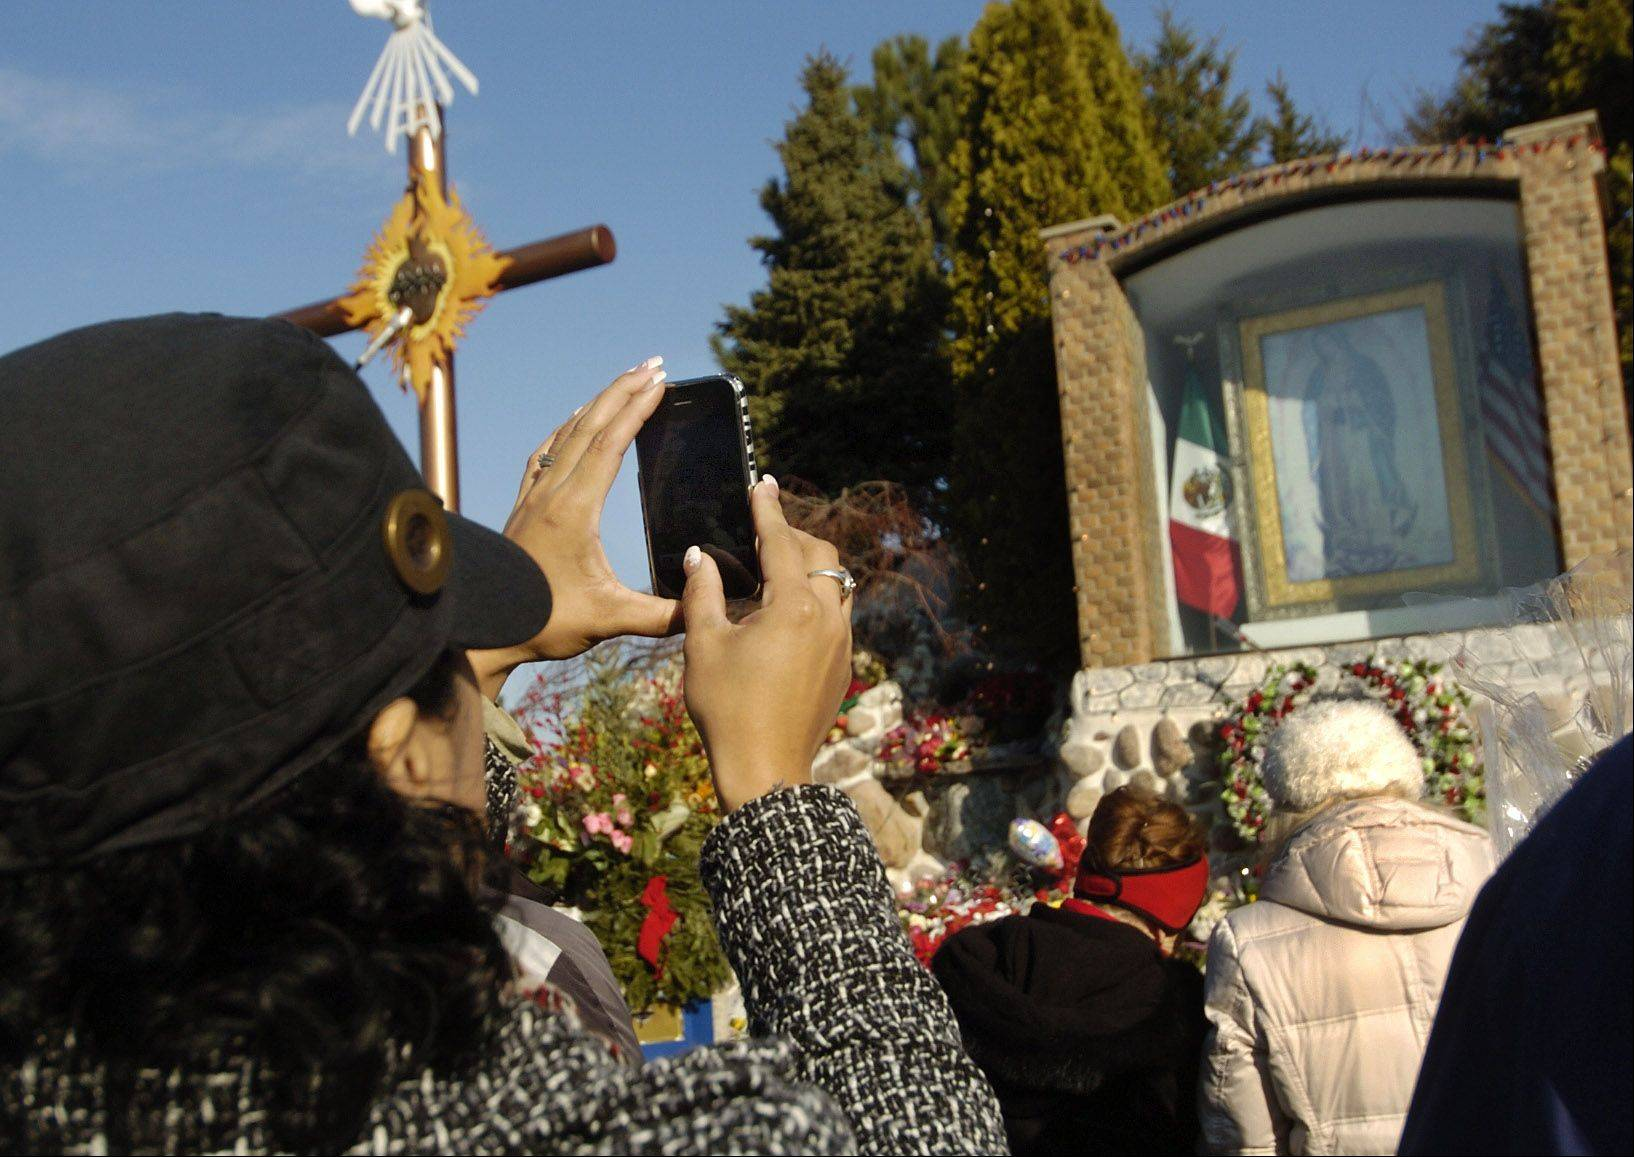 Today, thousands flock to Des Plaines shrine of the Virgin of Guadalupe